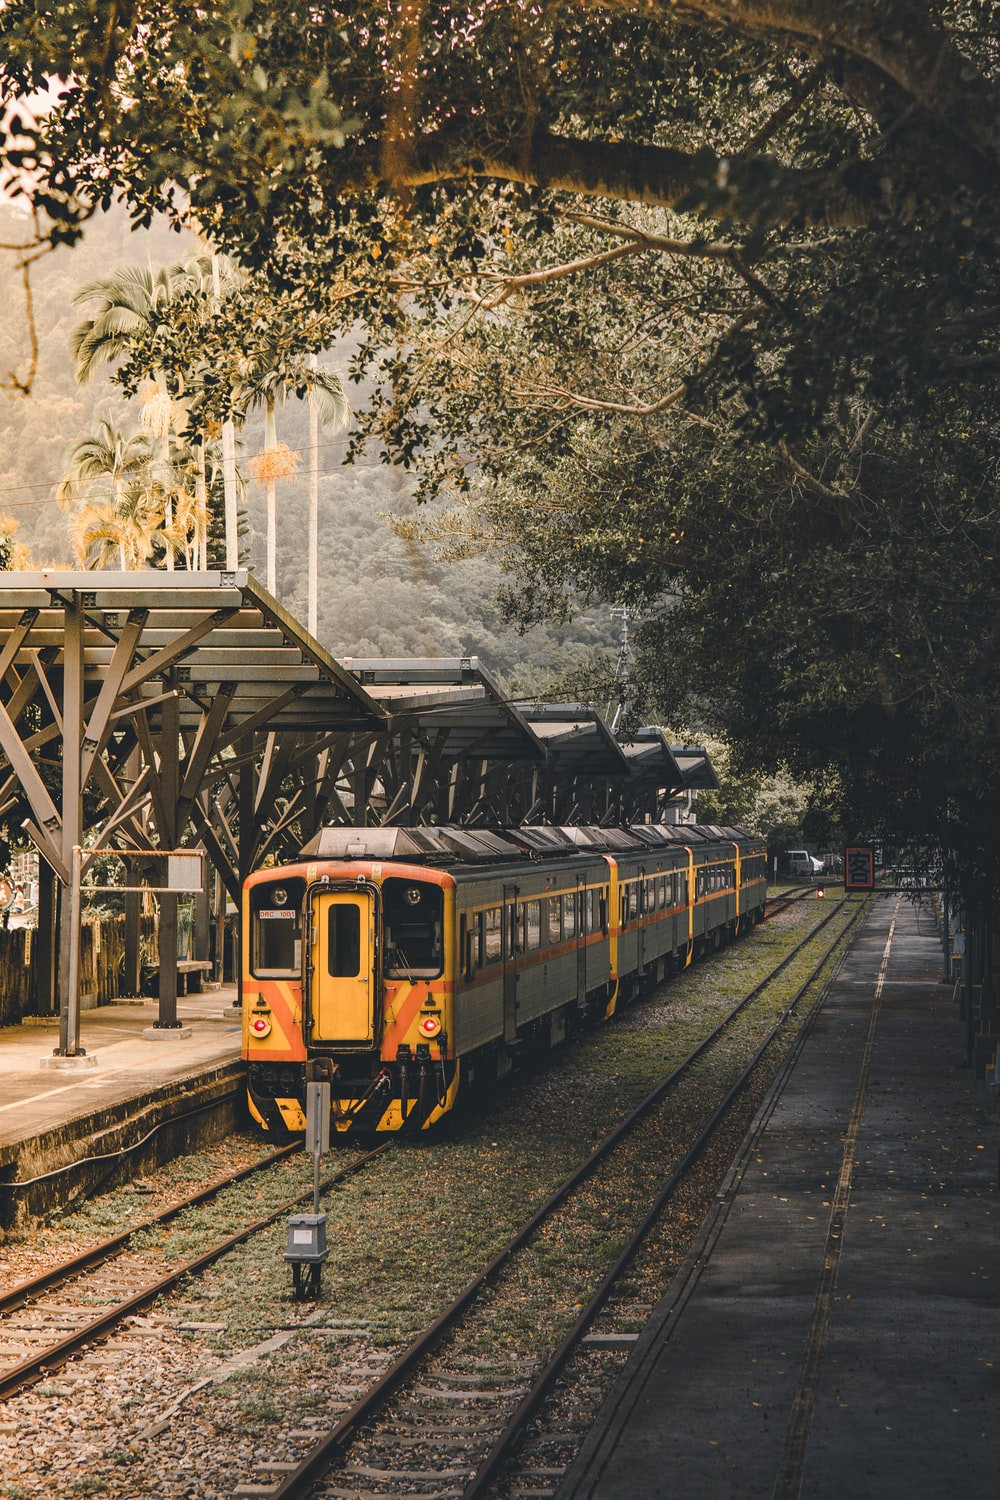 yellow and black train on rail road